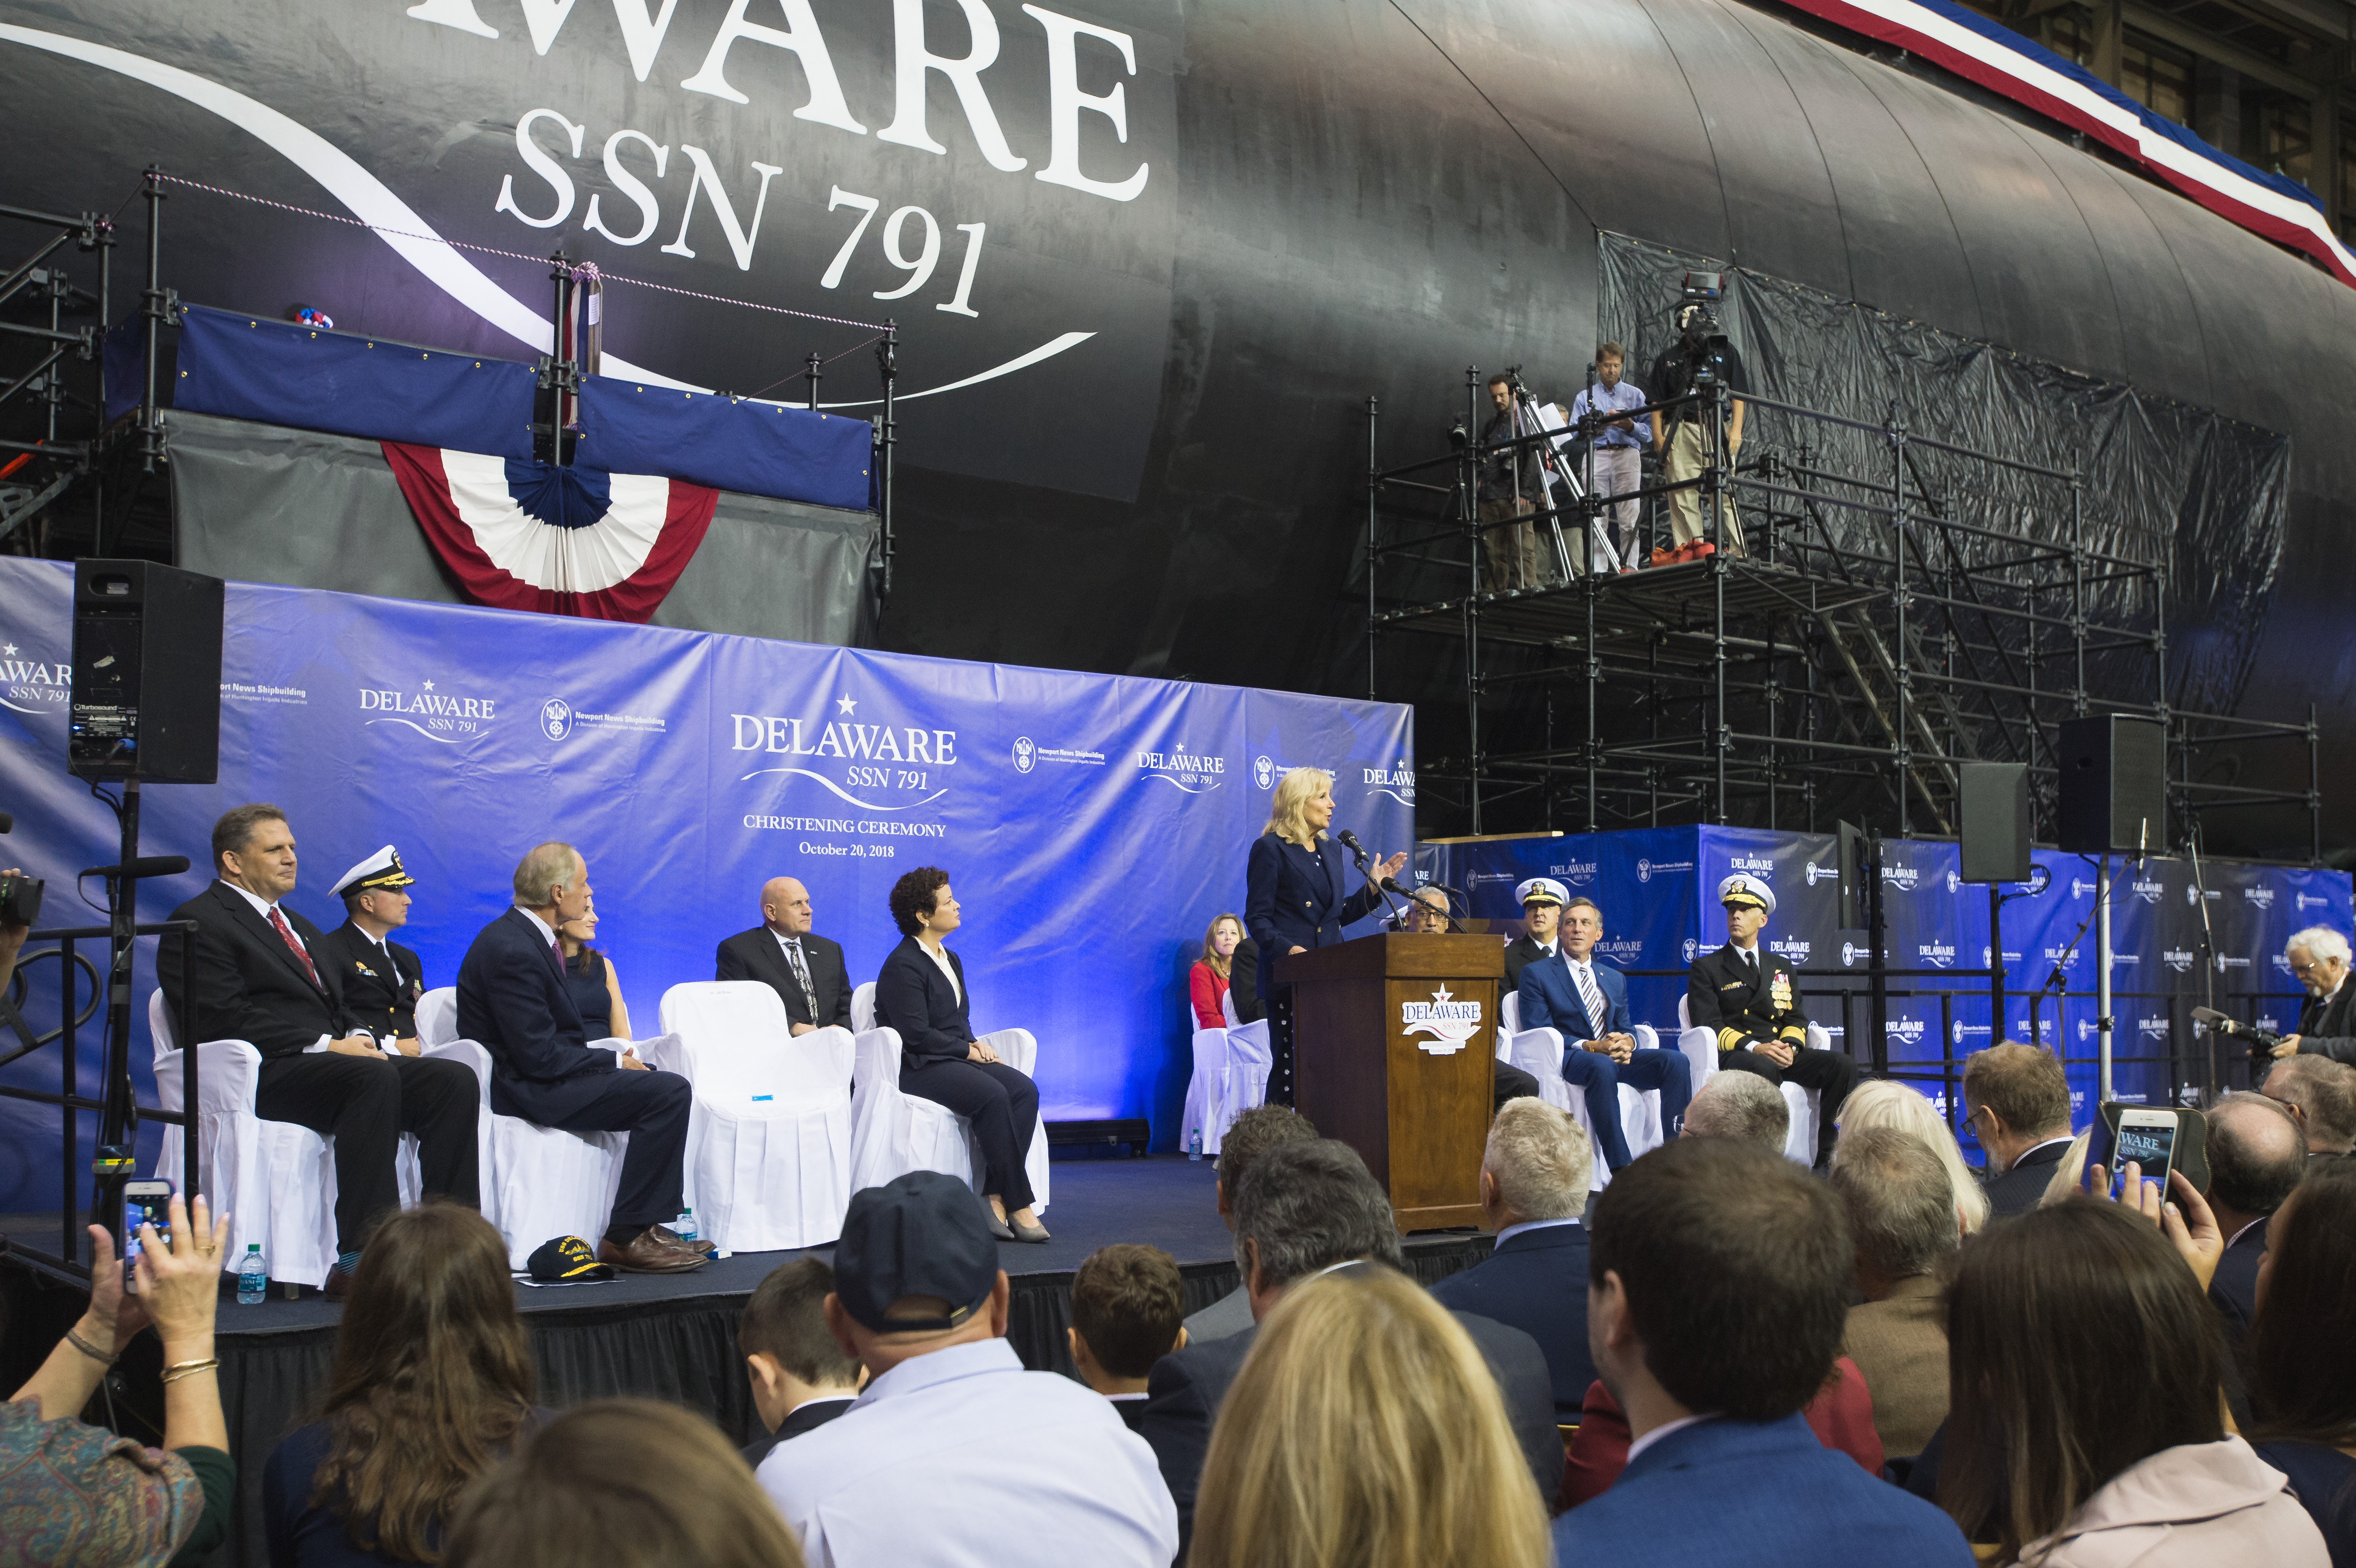 On Oct. 20, 2018, Newport News Shipbuilding christened Virginia-class submarine Delaware (SSN 791). Ship's Sponsor Dr. Jill Biden performed the ceremonial honor of breaking a bottle of American-made sparkling wine on the submarine's hull.